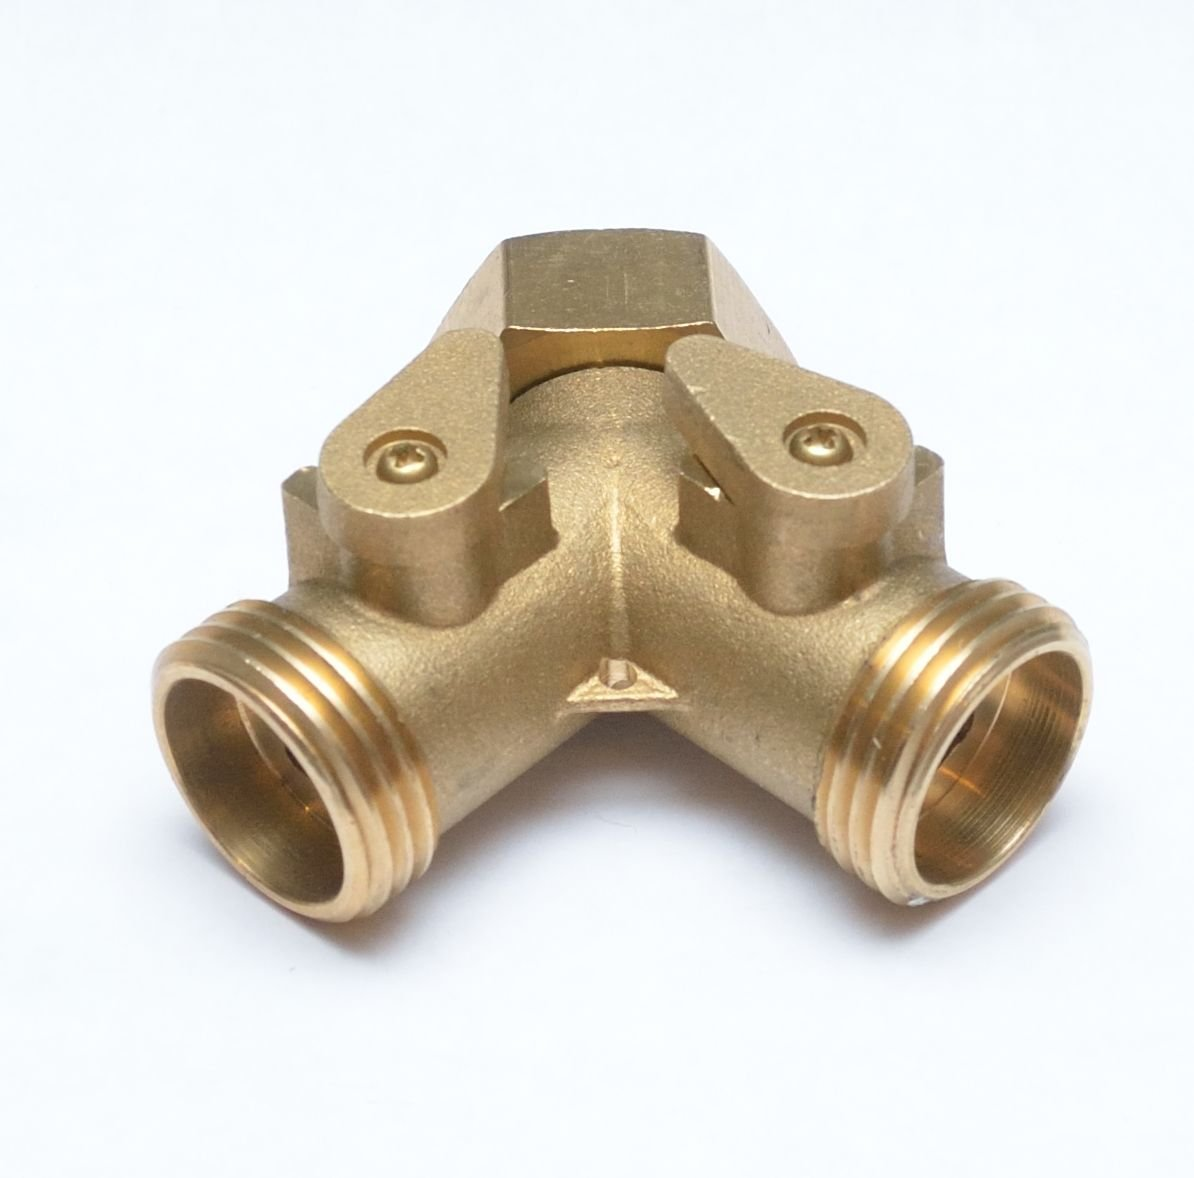 New 3/4'' Female GHT Washing Machine/Laundry Sink Y WYE Water Splitter Valve Pipe Reducer Adaptor Fitting Union POWER Welding Garden Gas Tool by GenericBrassAC